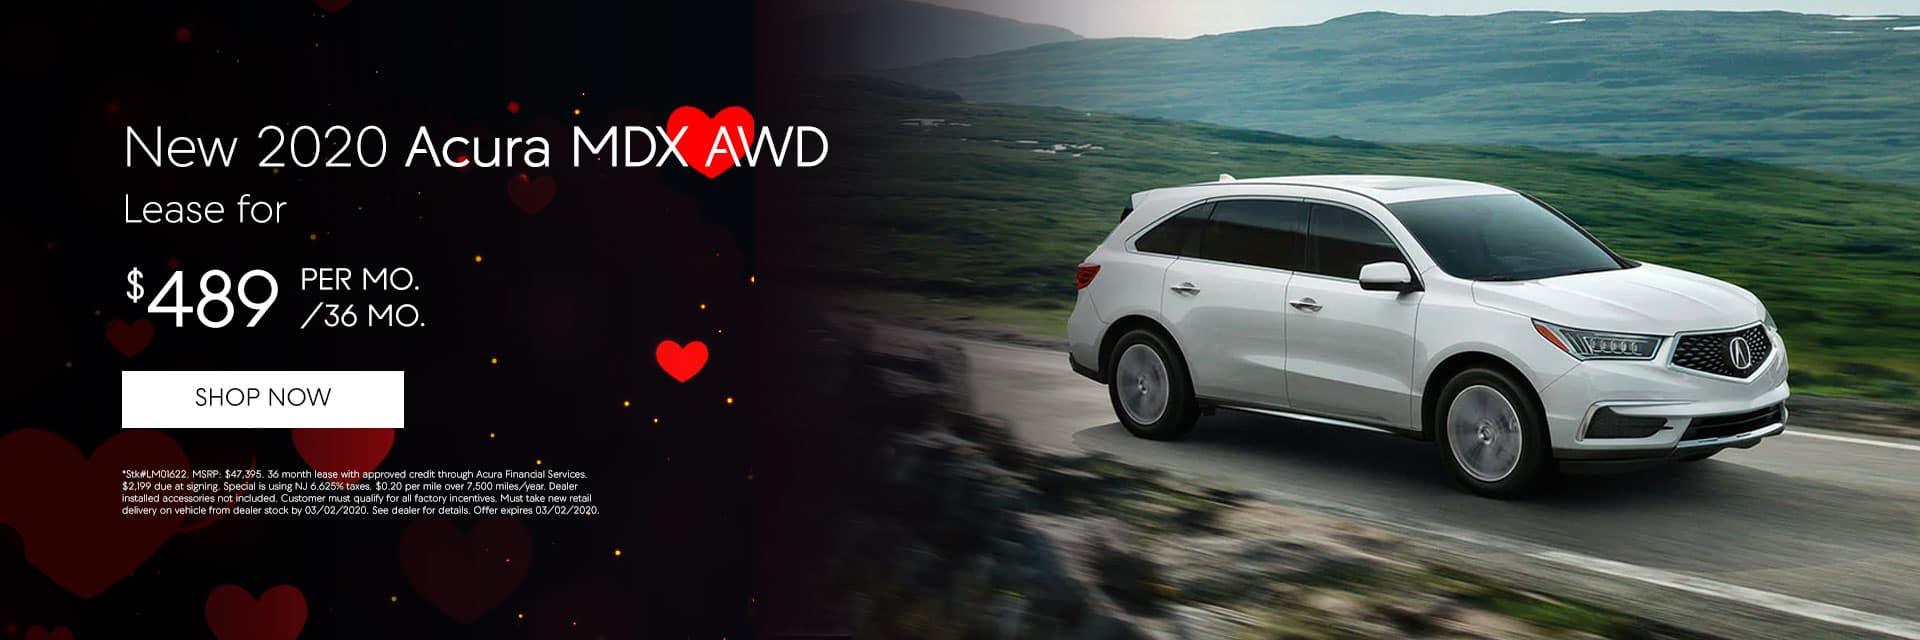 MDX Lease